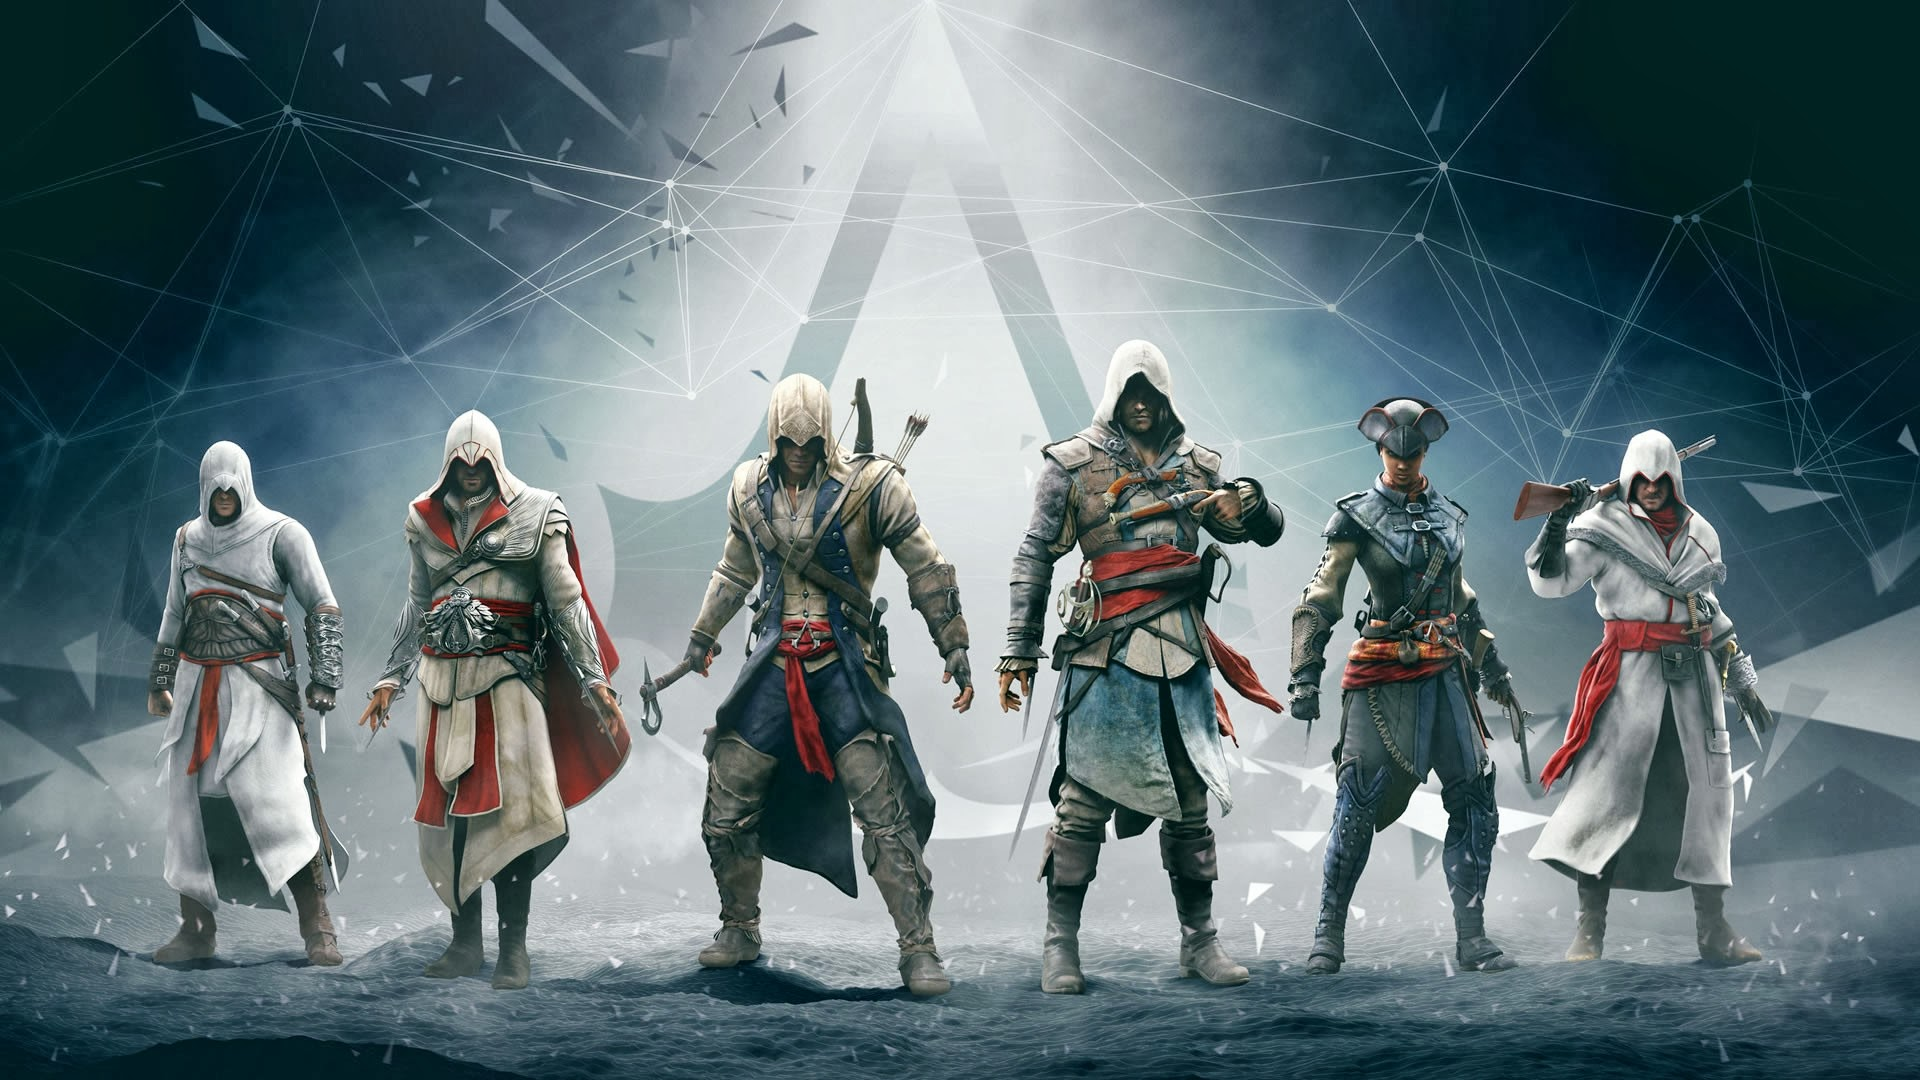 Assassins Creed Altair Ezio Connor Edward 1517.8 Kb